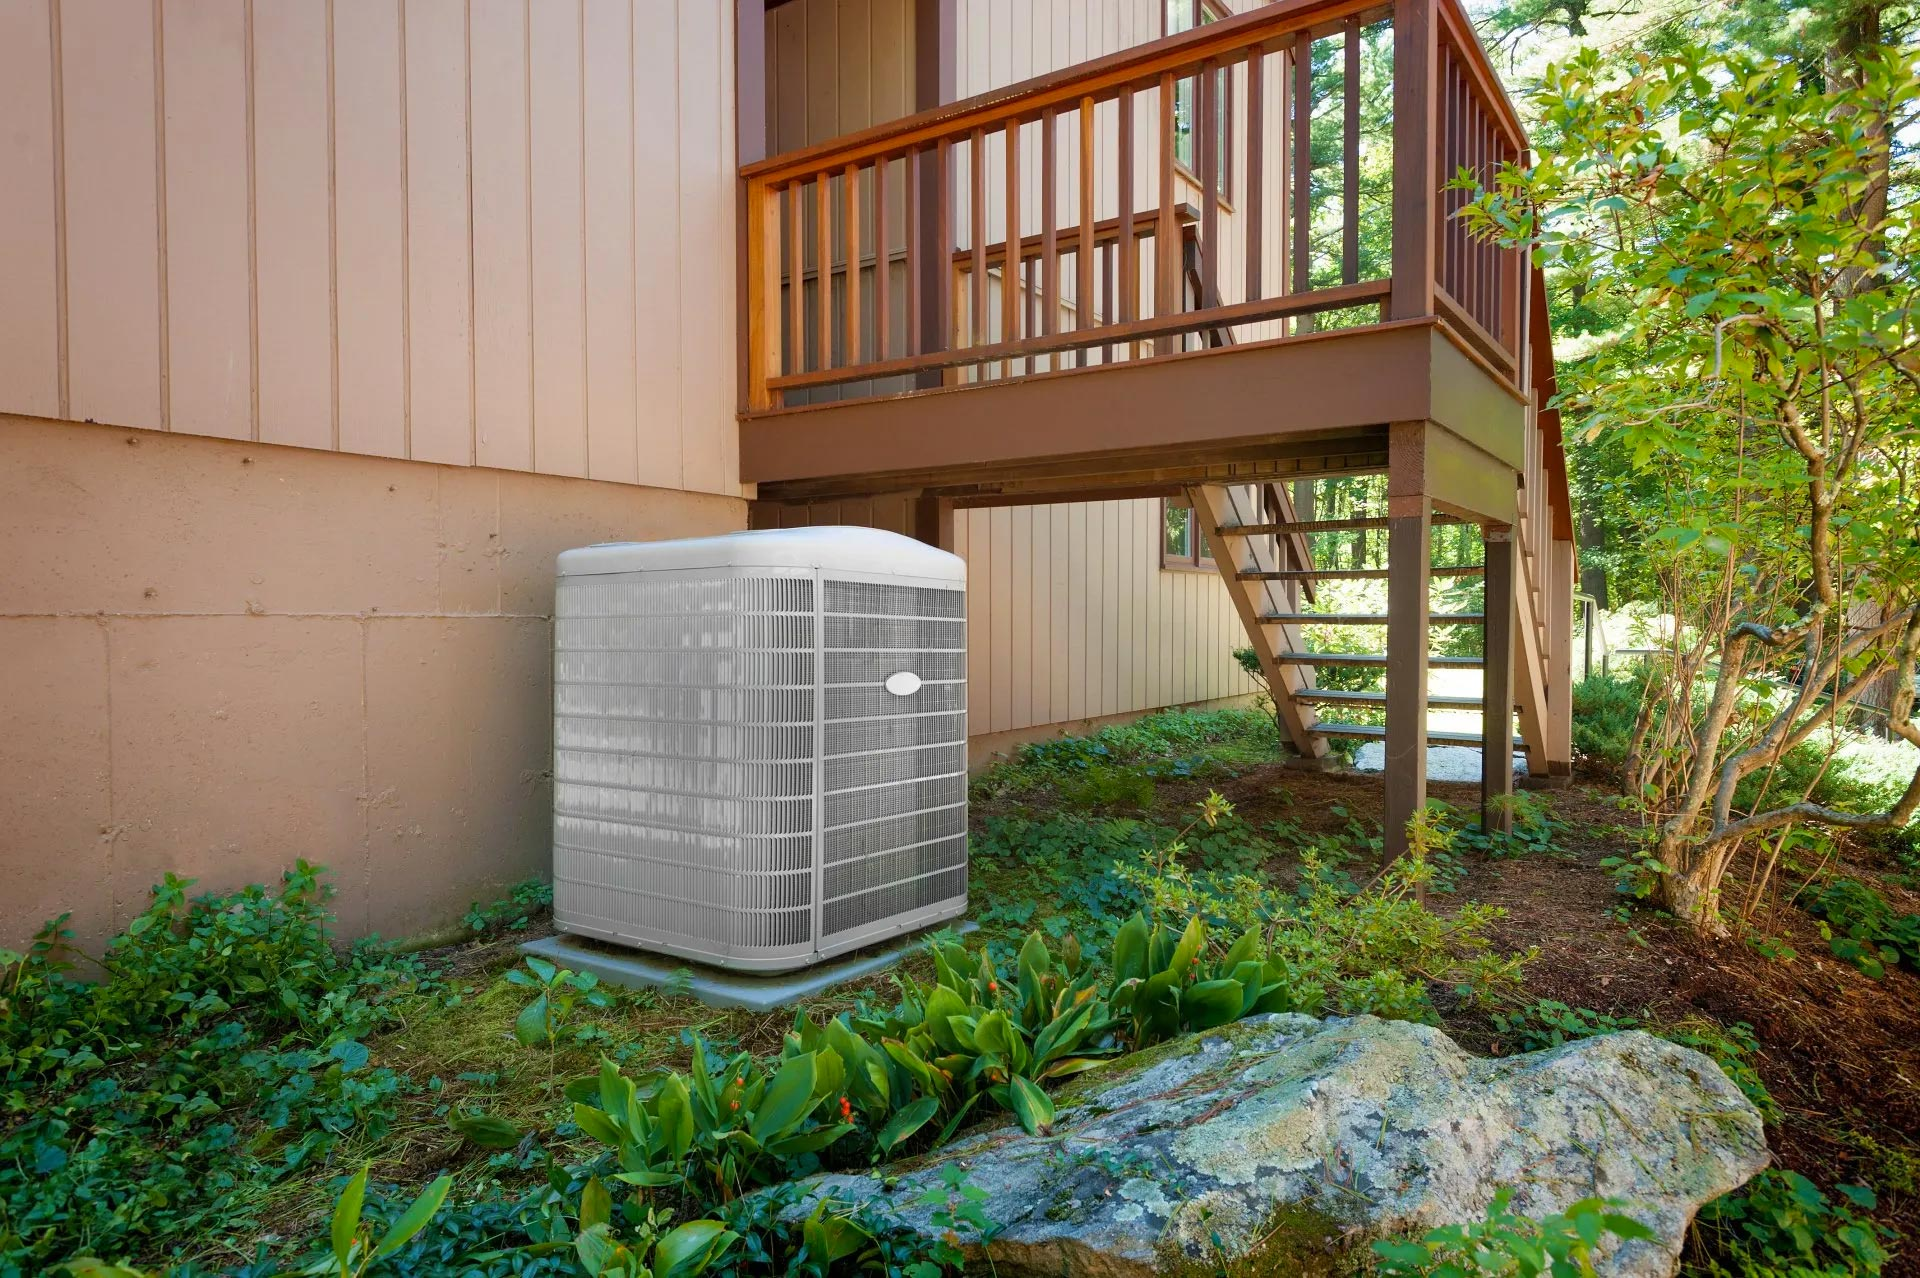 Rent-to-Own Air Conditioner No Credit Check